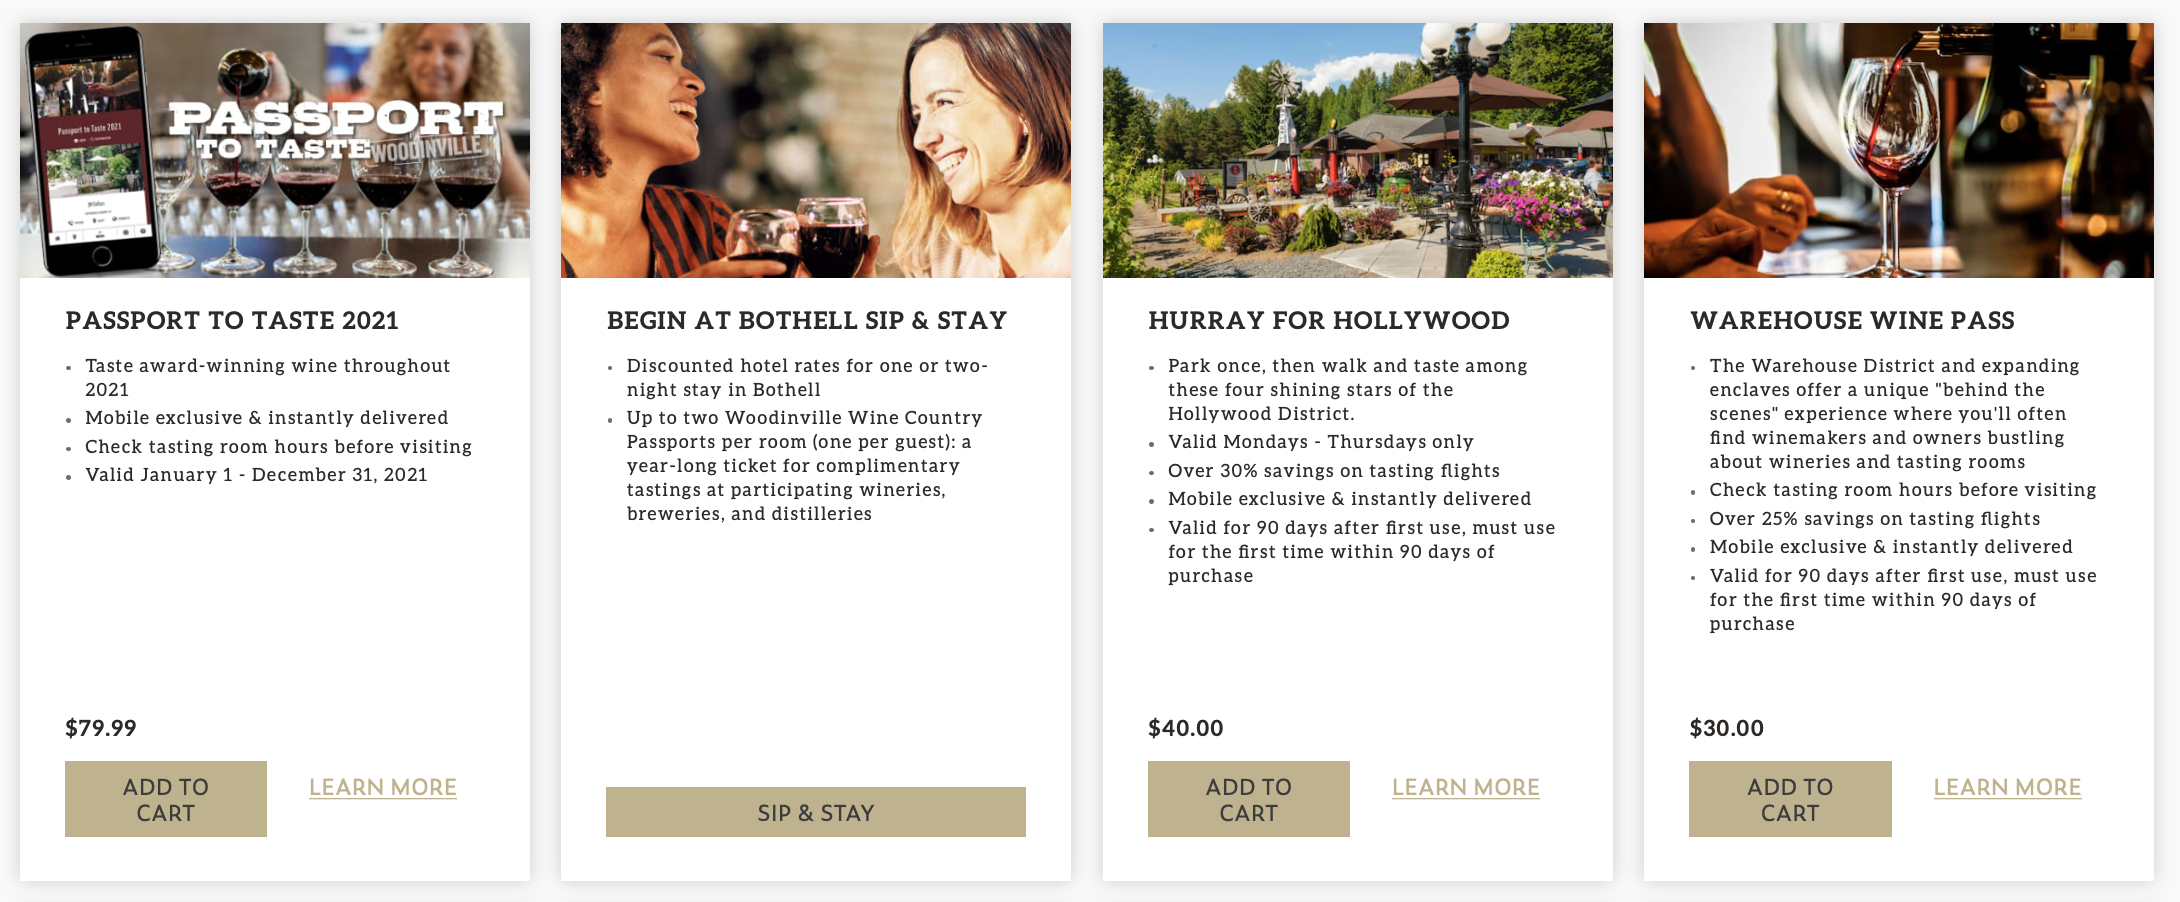 """A set of four images of wine glasses, women drinking wine, an outdoor patio, and a wine glass being filled with wine, with text below, reading """"A Passport to Taste 2021,"""" """"Begin at Bothell Sip & Stay,"""" """"Hurray for Hollywood,"""" and """" Warehouse Wine Pass."""""""